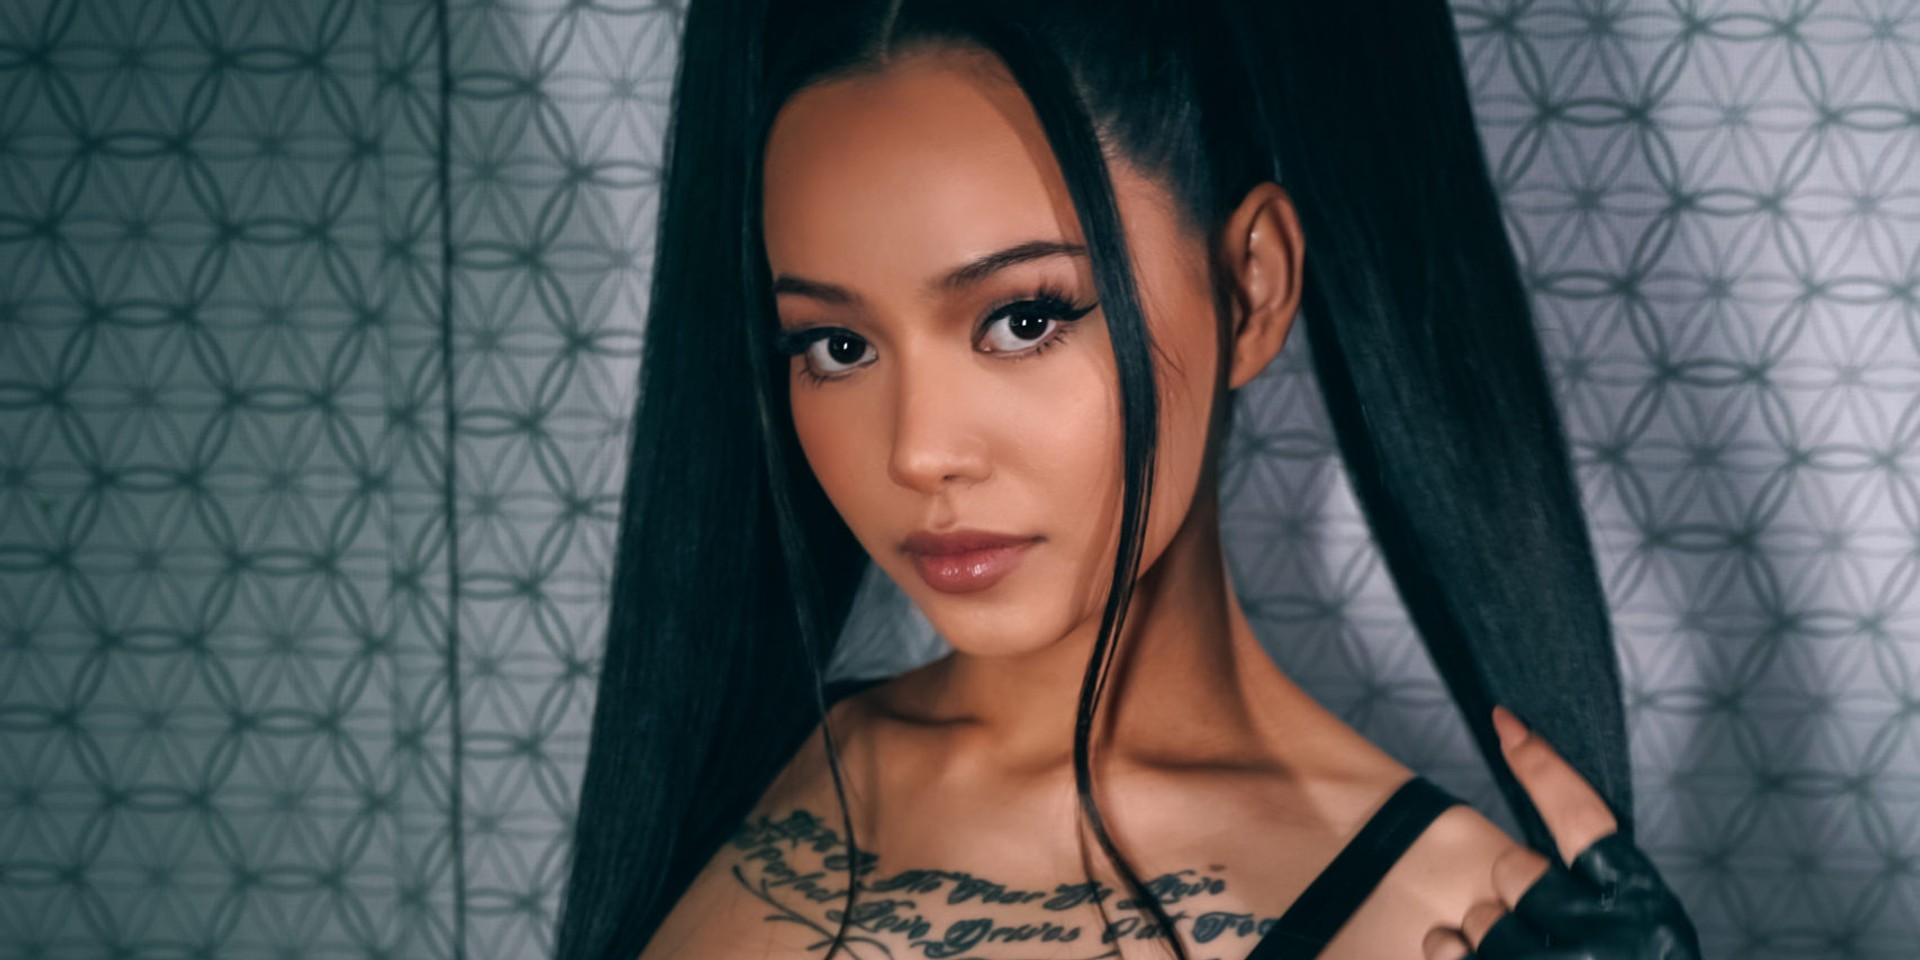 TikTok star Bella Poarch signs to Warner Music, unveils music video for debut single – watch